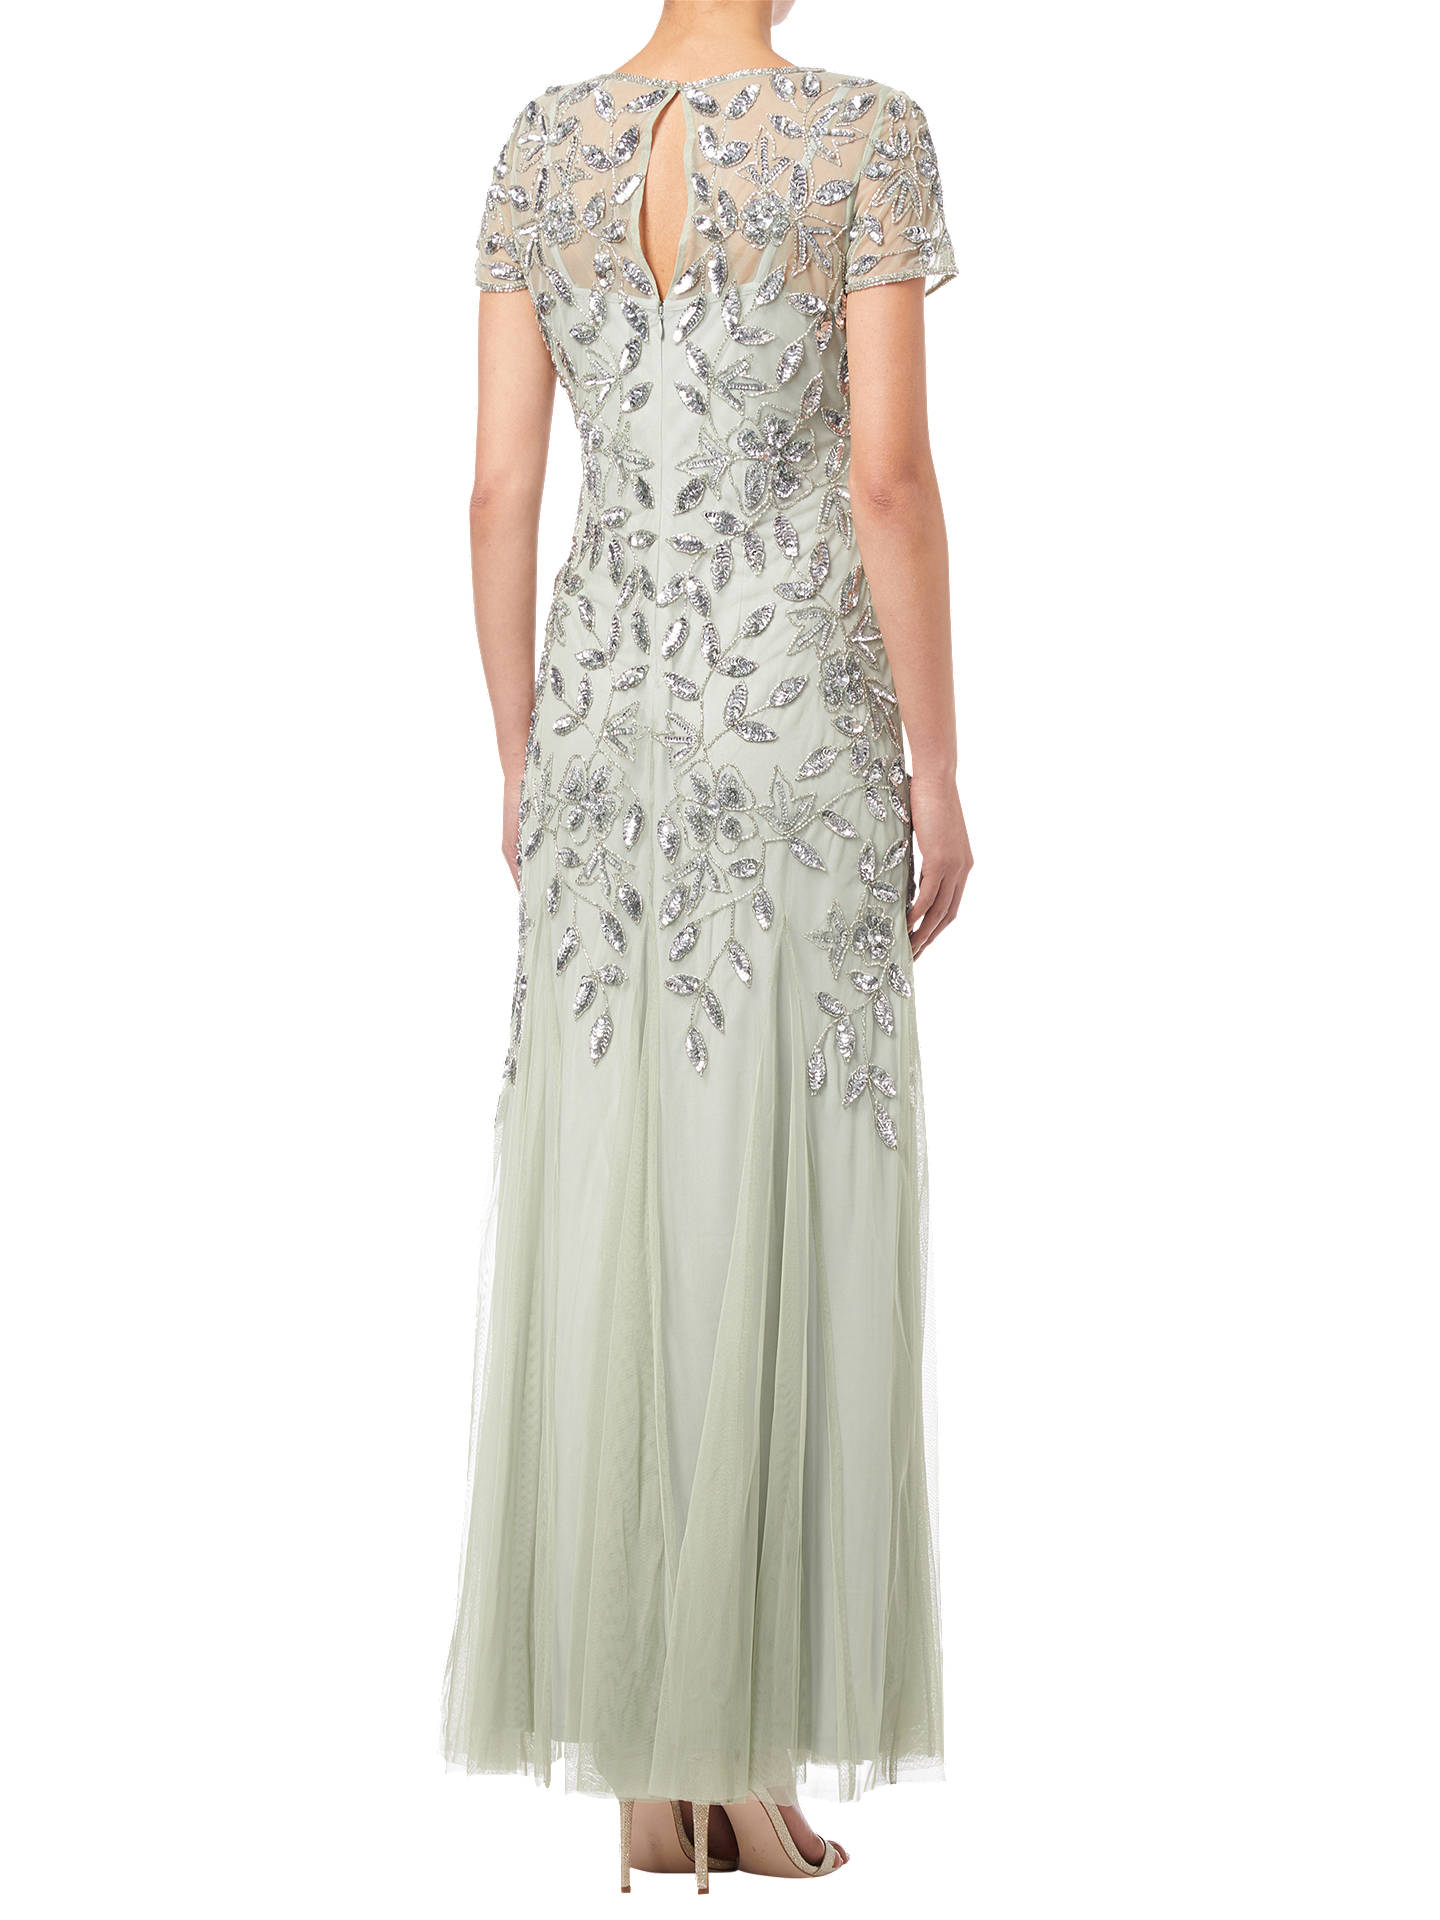 e039864adc ... Buy Adrianna Papell Floral Beaded Godet Dress, Mint, 8 Online at  johnlewis.com ...